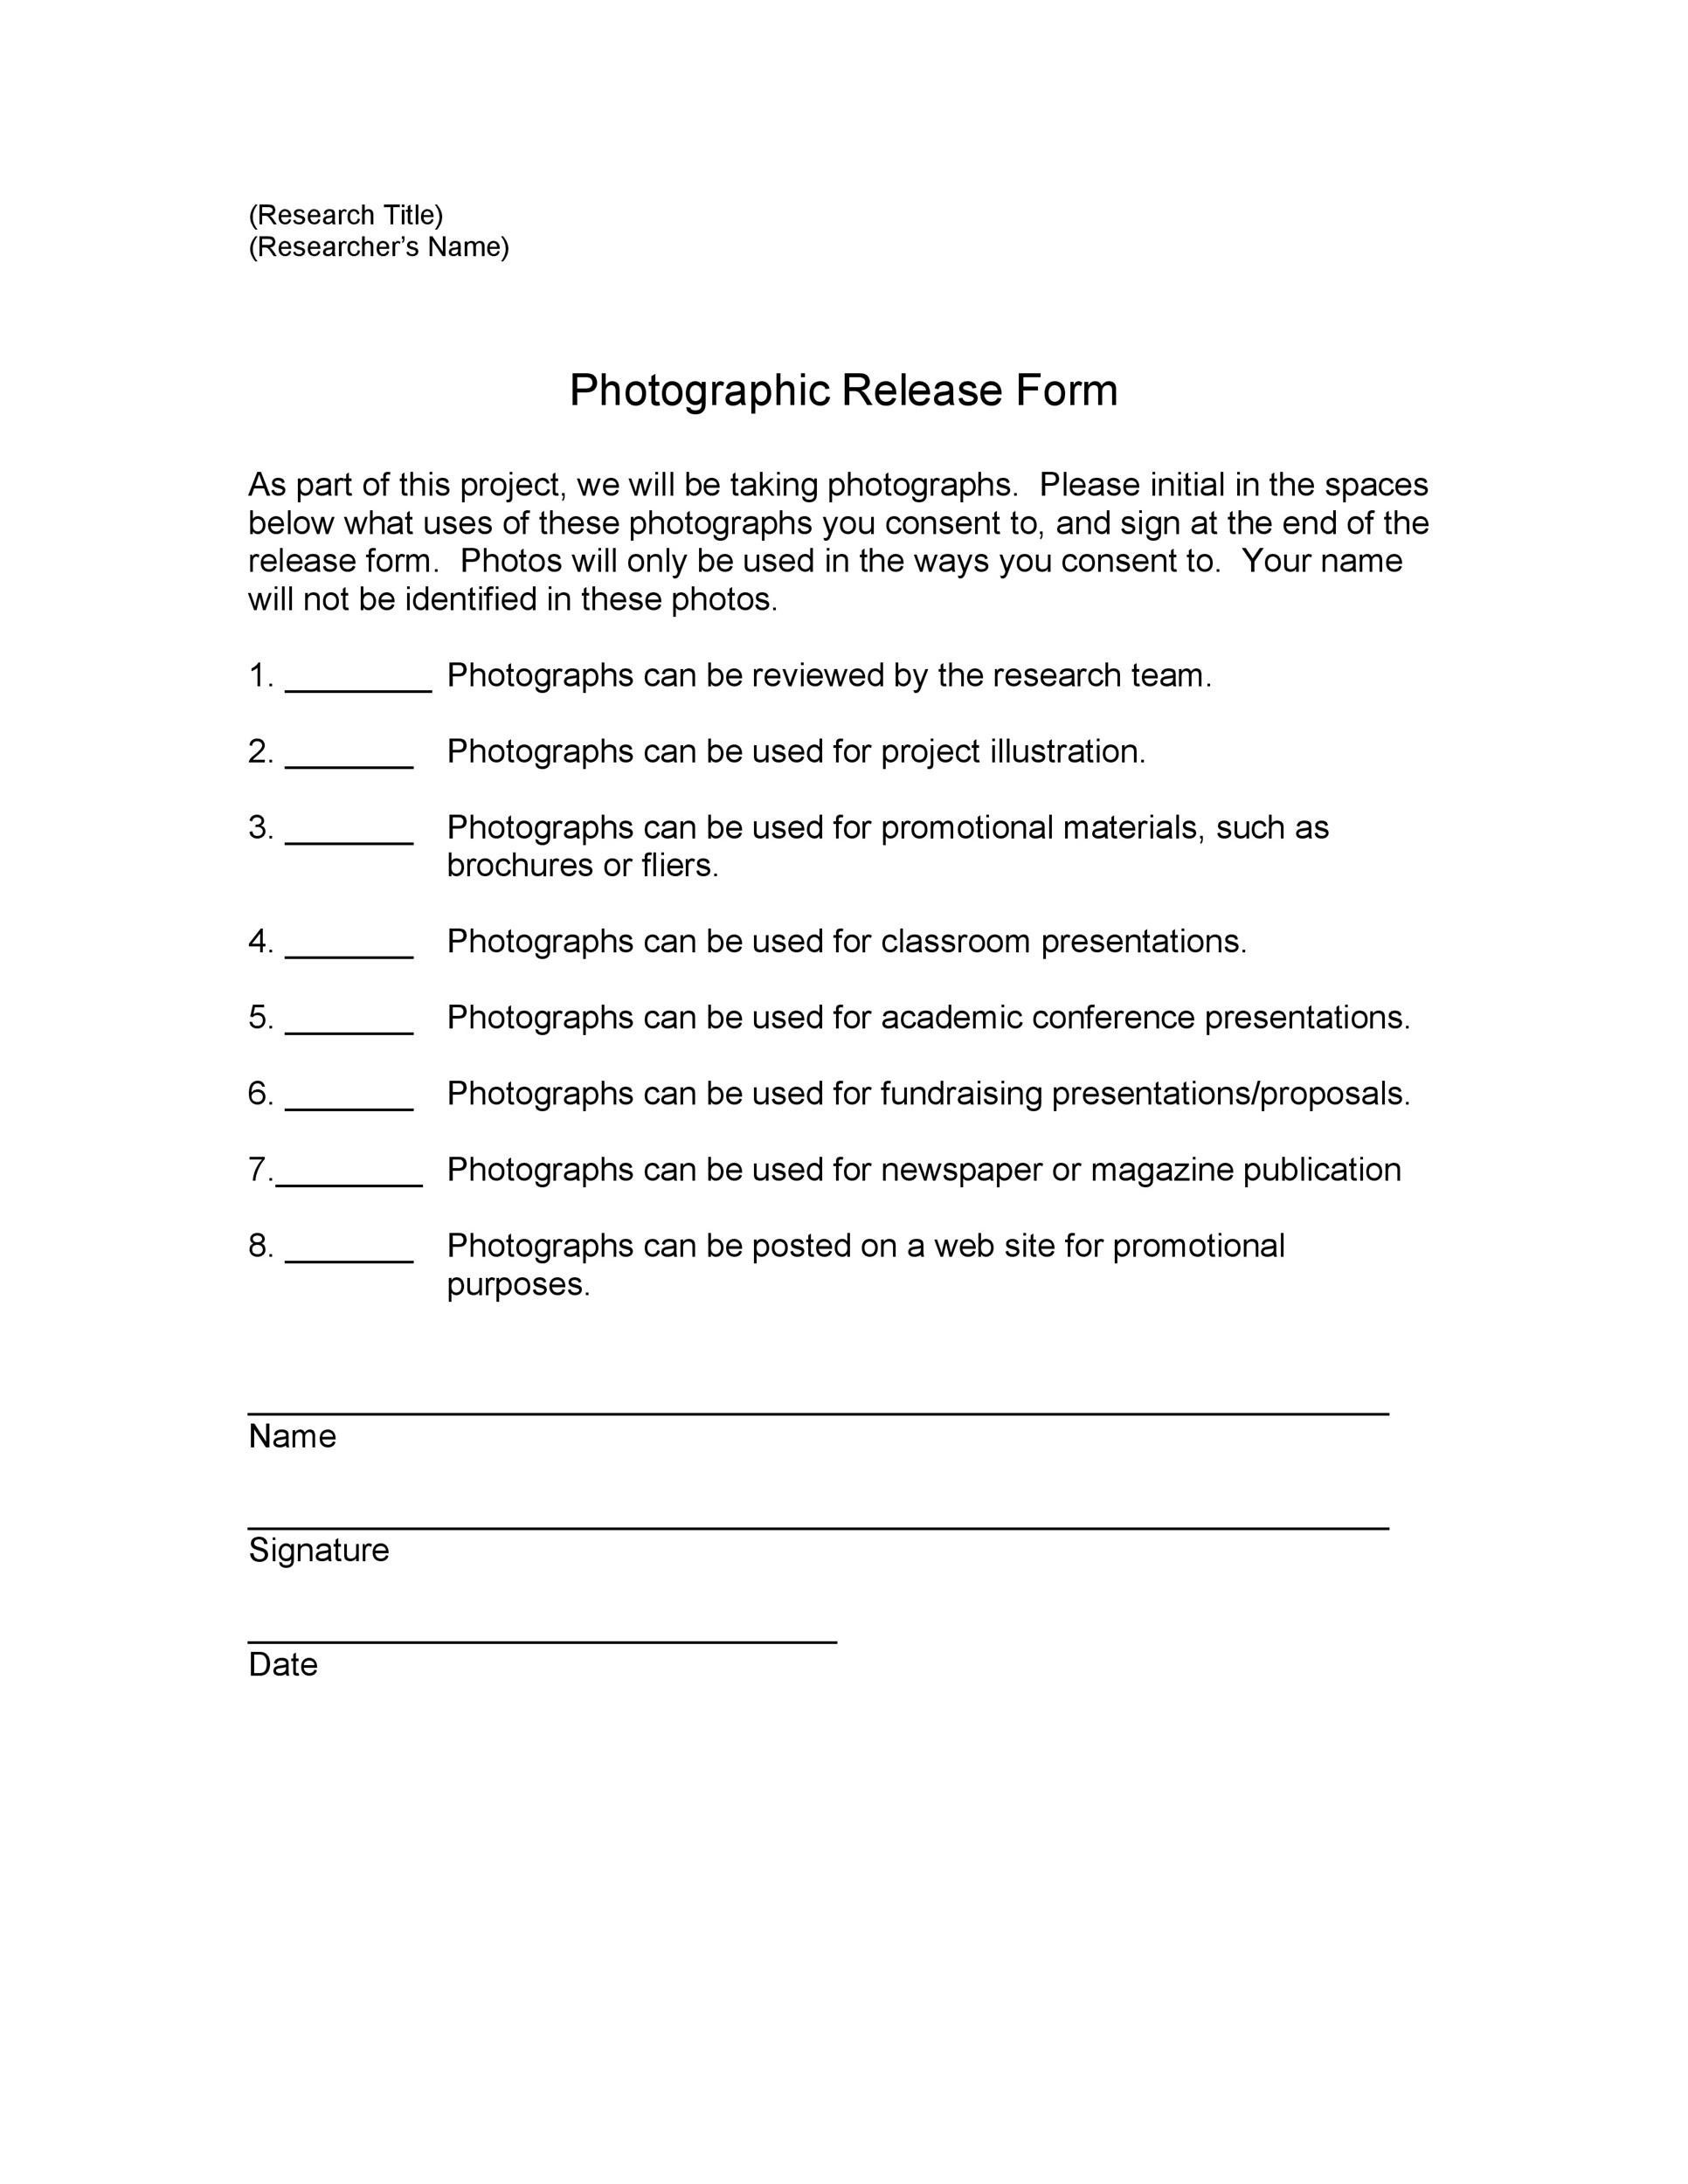 53 FREE Photo Release Form Templates Word PDF Template Lab – Research Consent Form Template